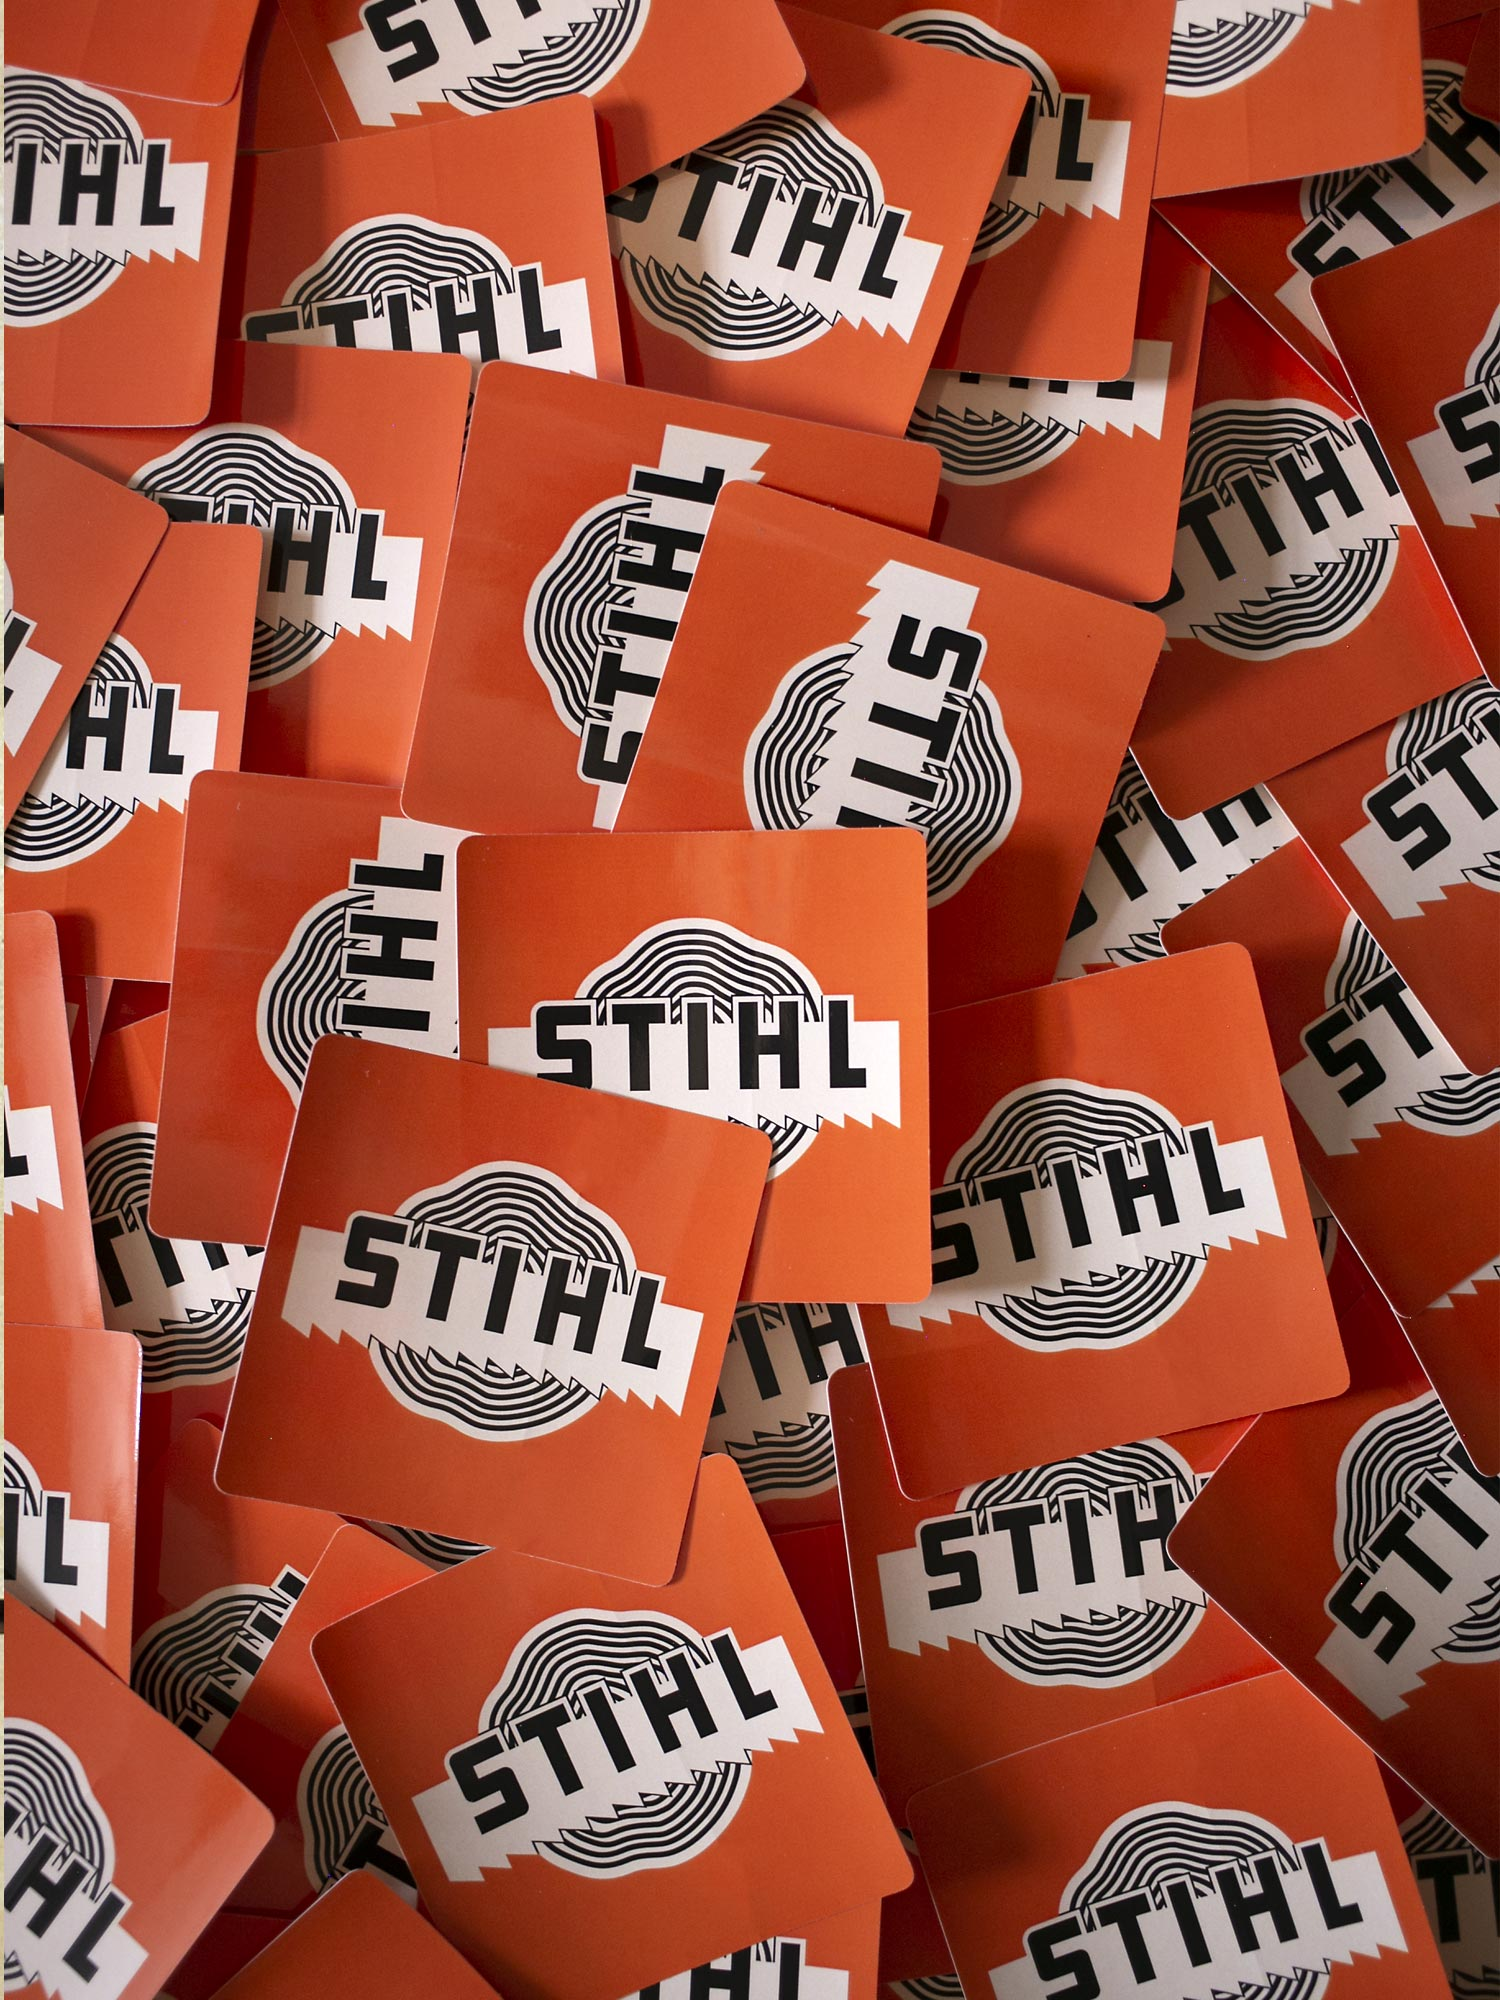 STIHL Saw Blade Vinyl Decal